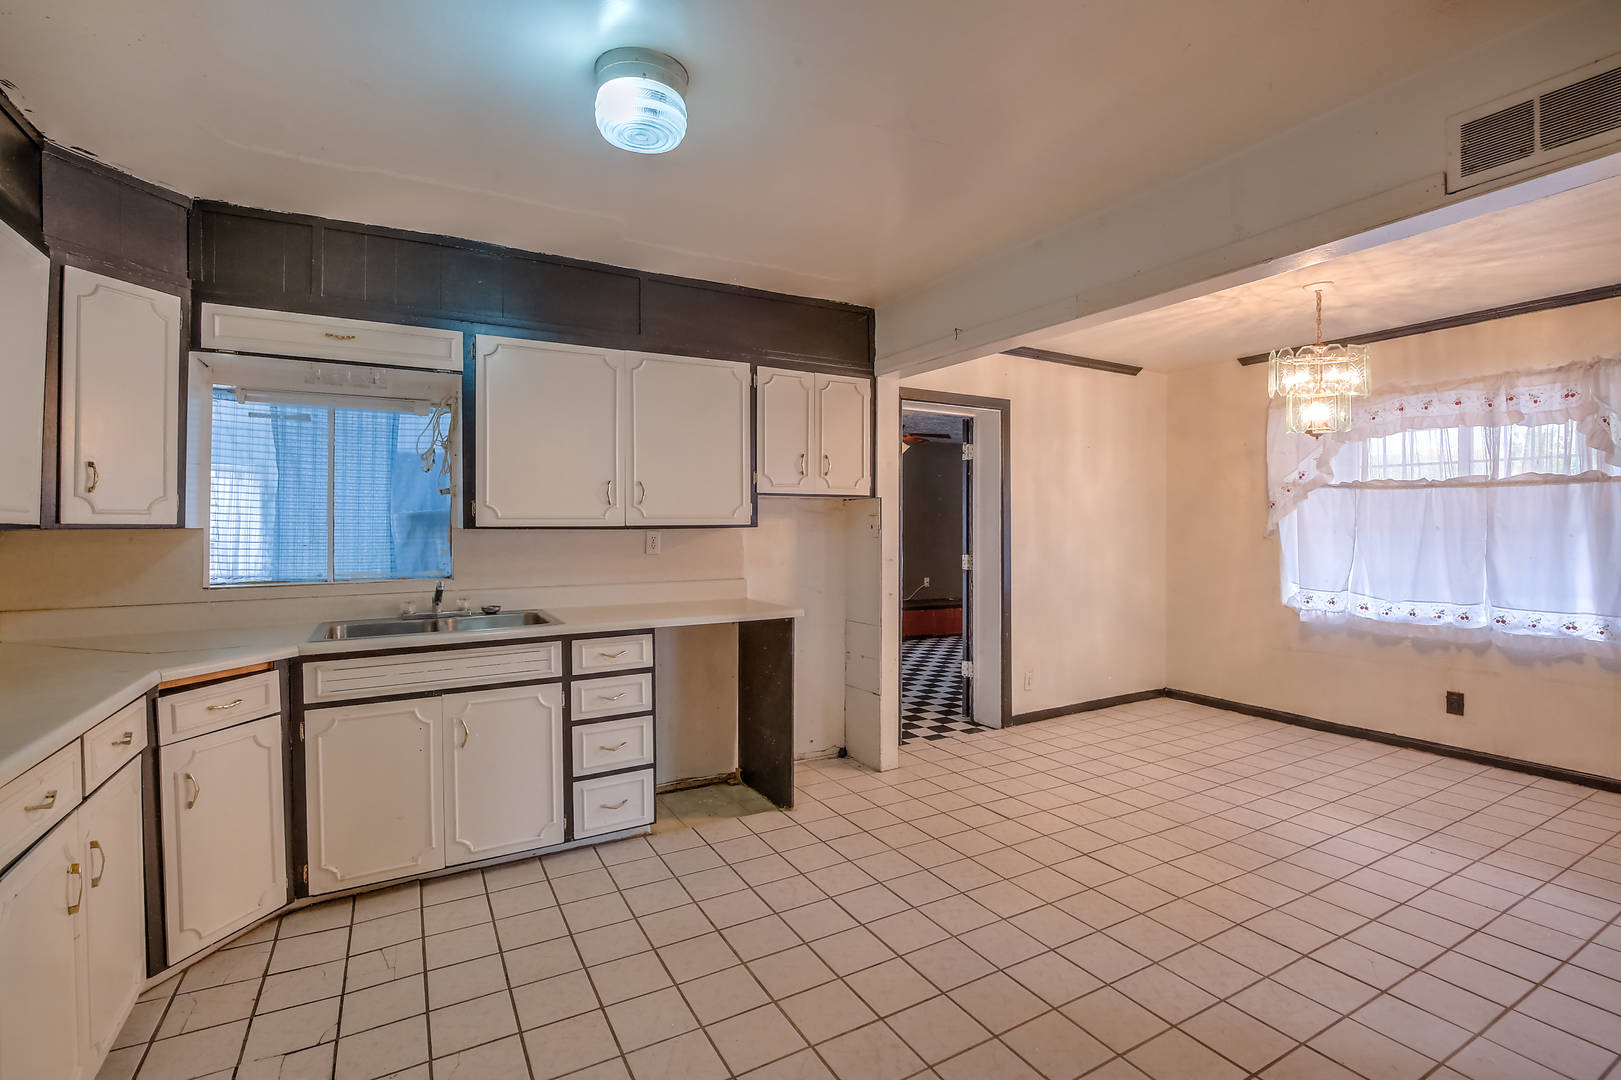 821 Whiting Rd SW Albuquerque, NM 87105